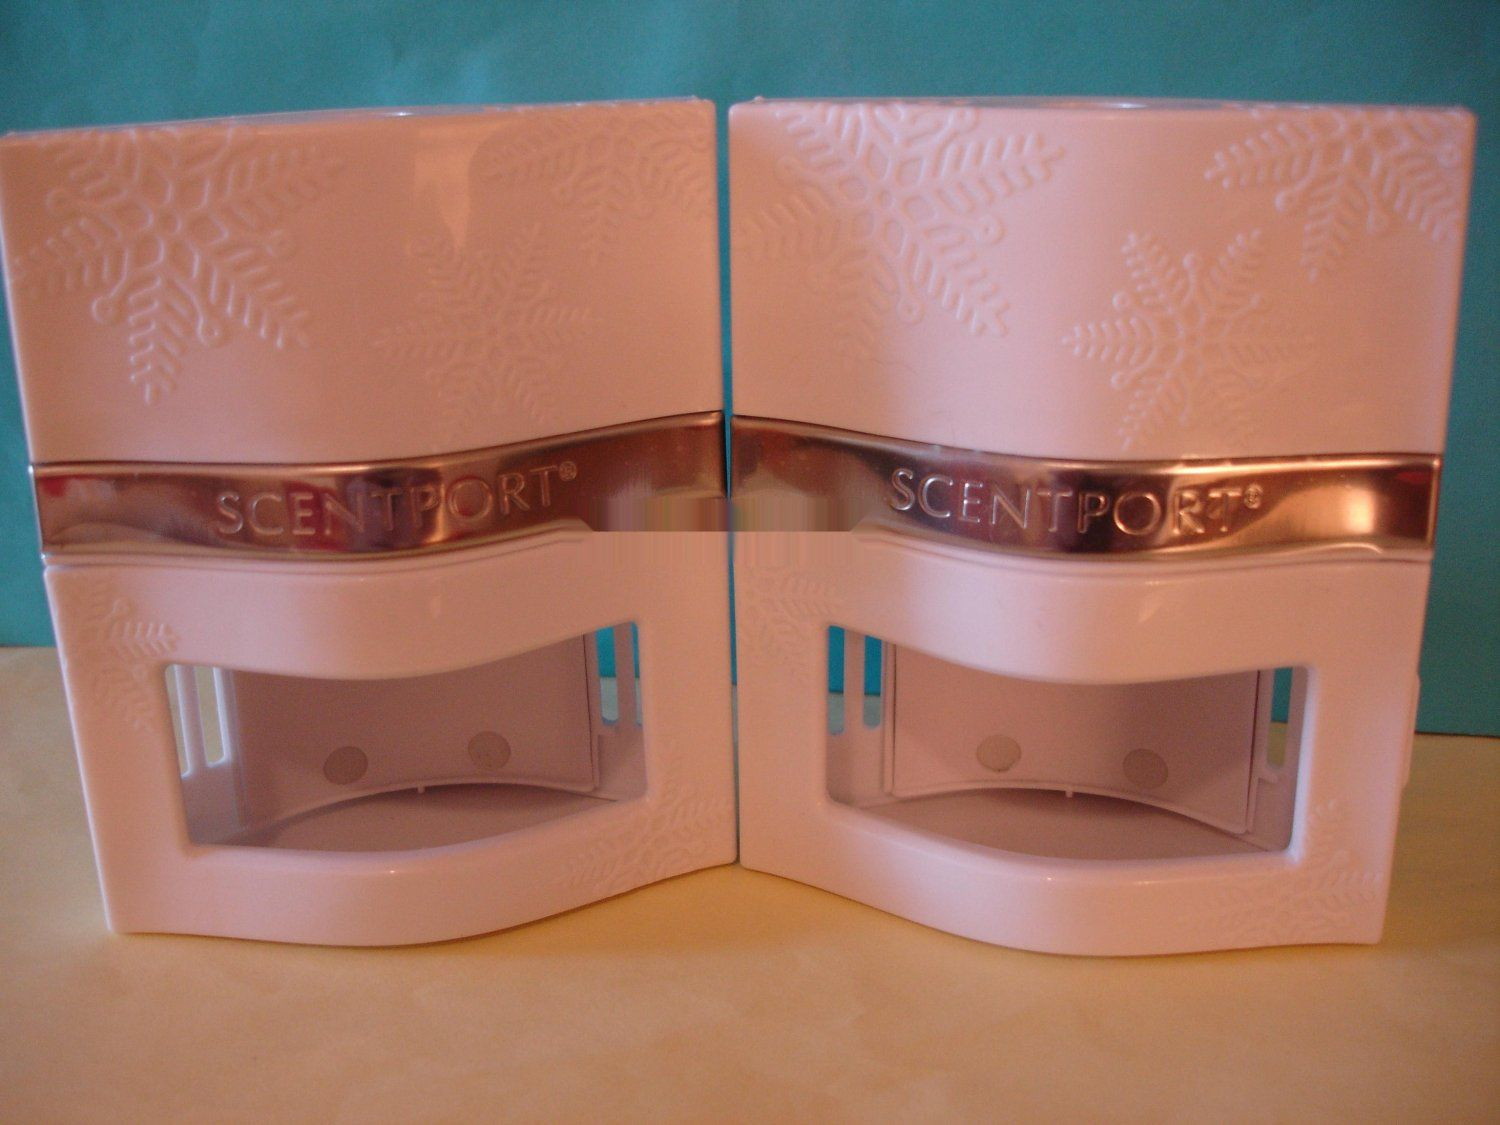 Bath and Body Works Scentport Unit    This is for 2 New Bath and Body Works Scentport Warmer UNIT in White, with Snowflakes Embossed on the Front as s